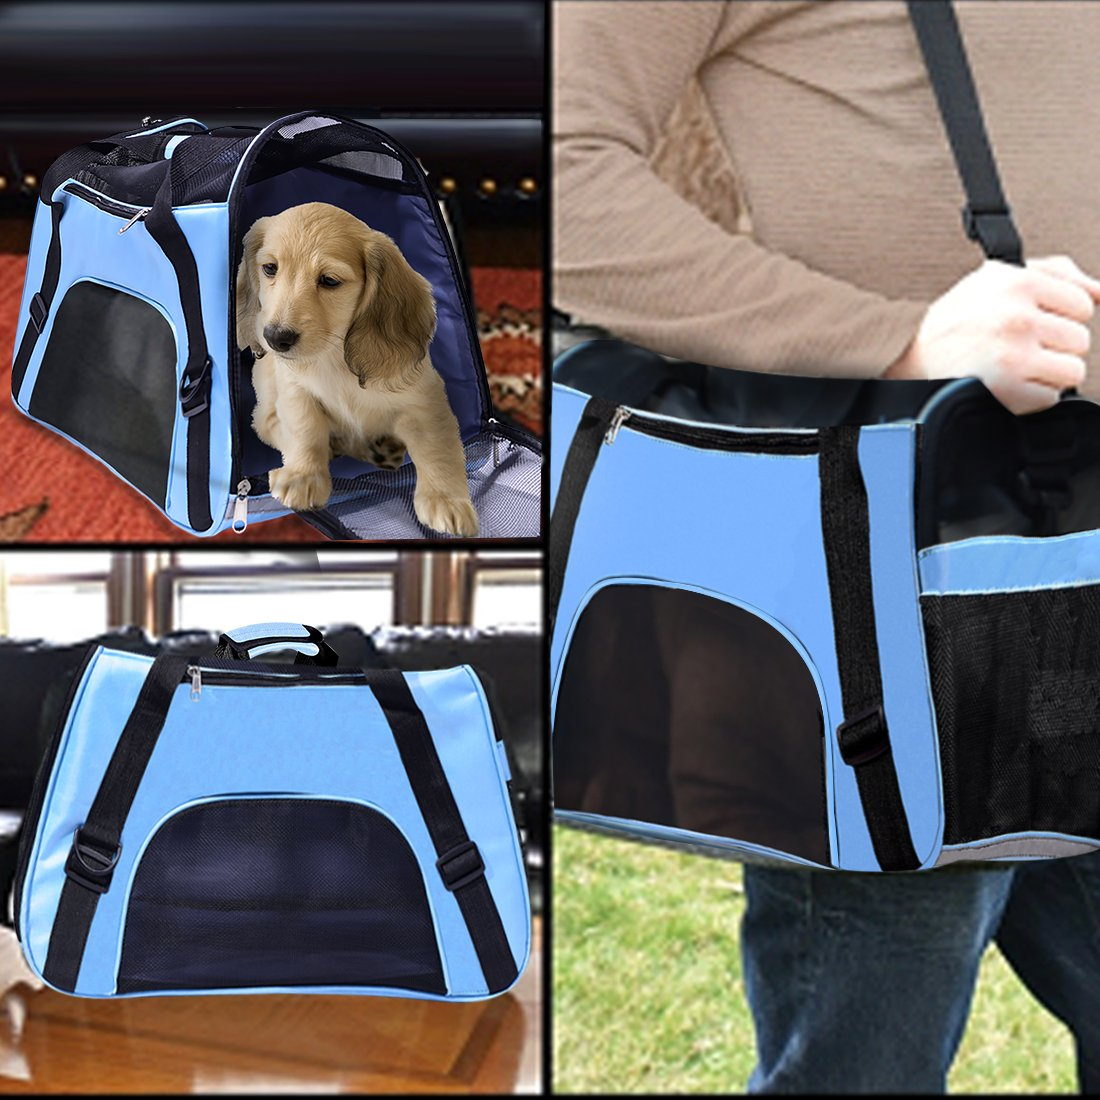 PPOGOO Pet Travel Carriers Soft Sided Portable Bags for Dogs and Cats Airline Approved Dog Carrier 22'' L x 10.2'' W x 13.8'' H Sky Blue by PPOGOO (Image #8)